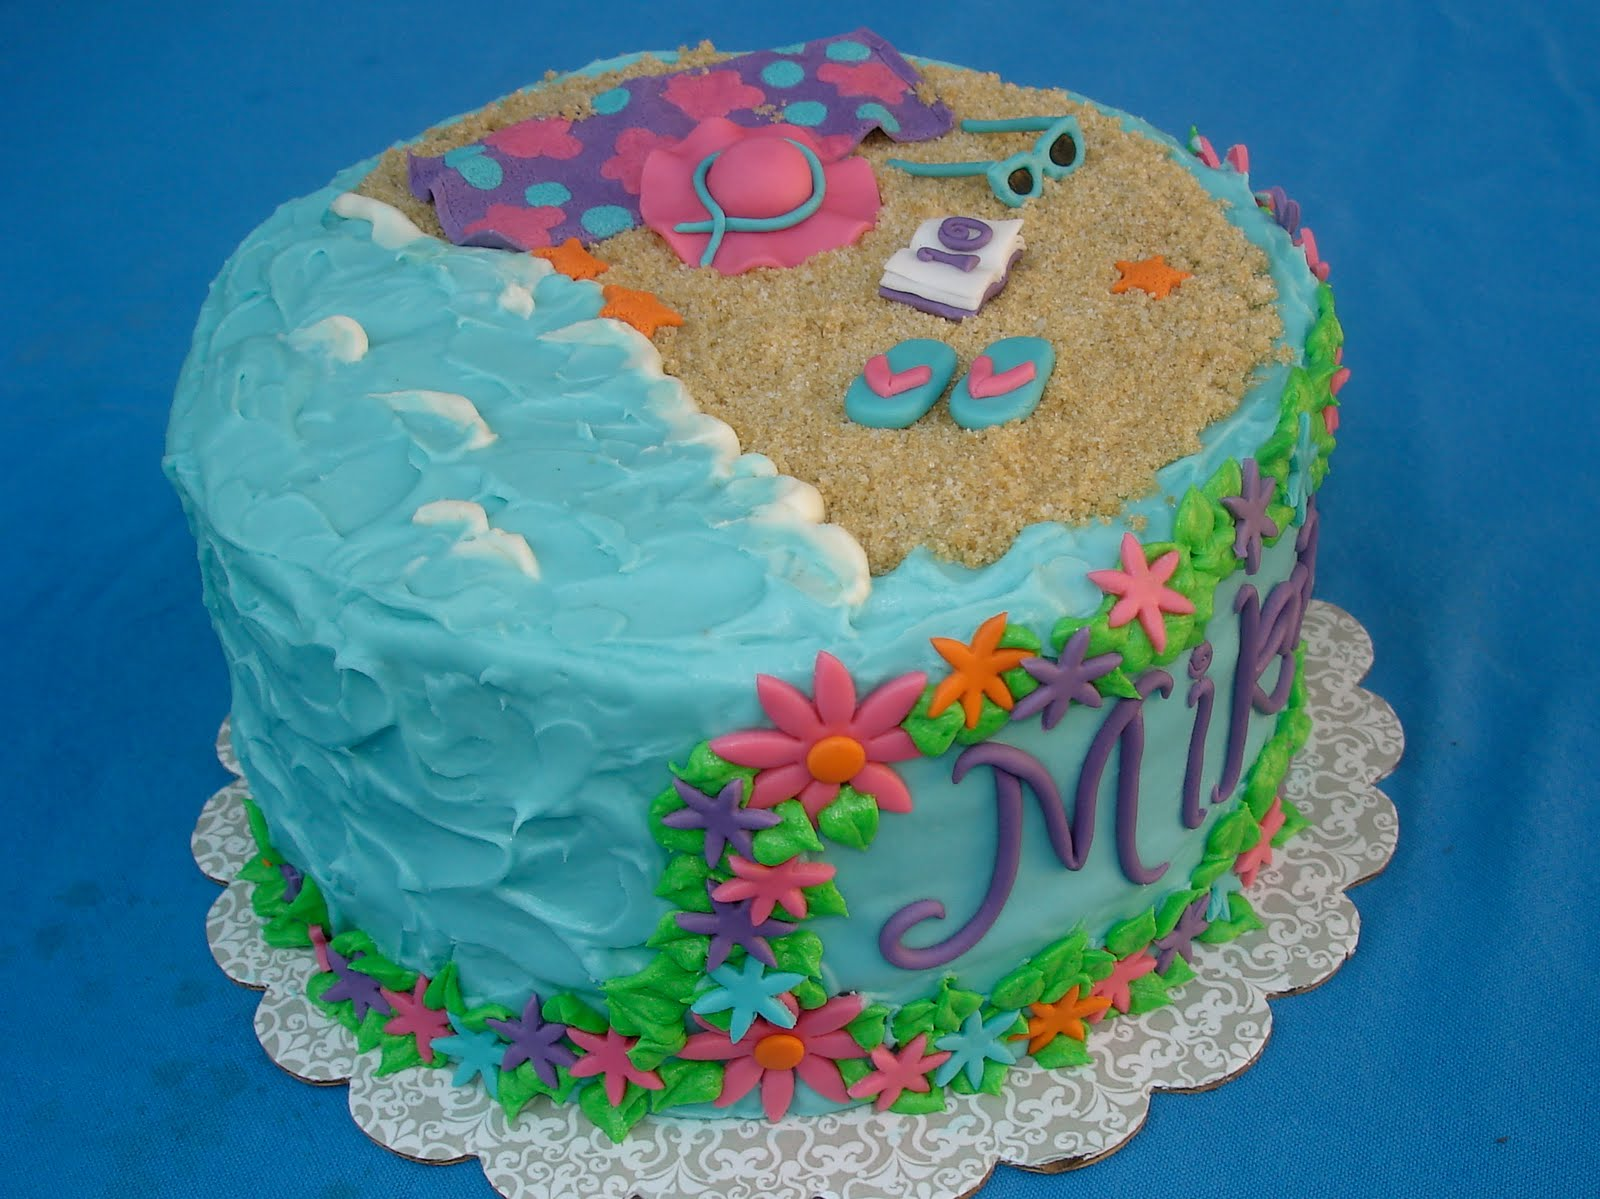 Cake Decorating Ideas Summer : Susana s Cakes: Beach Girl Birthday Cake